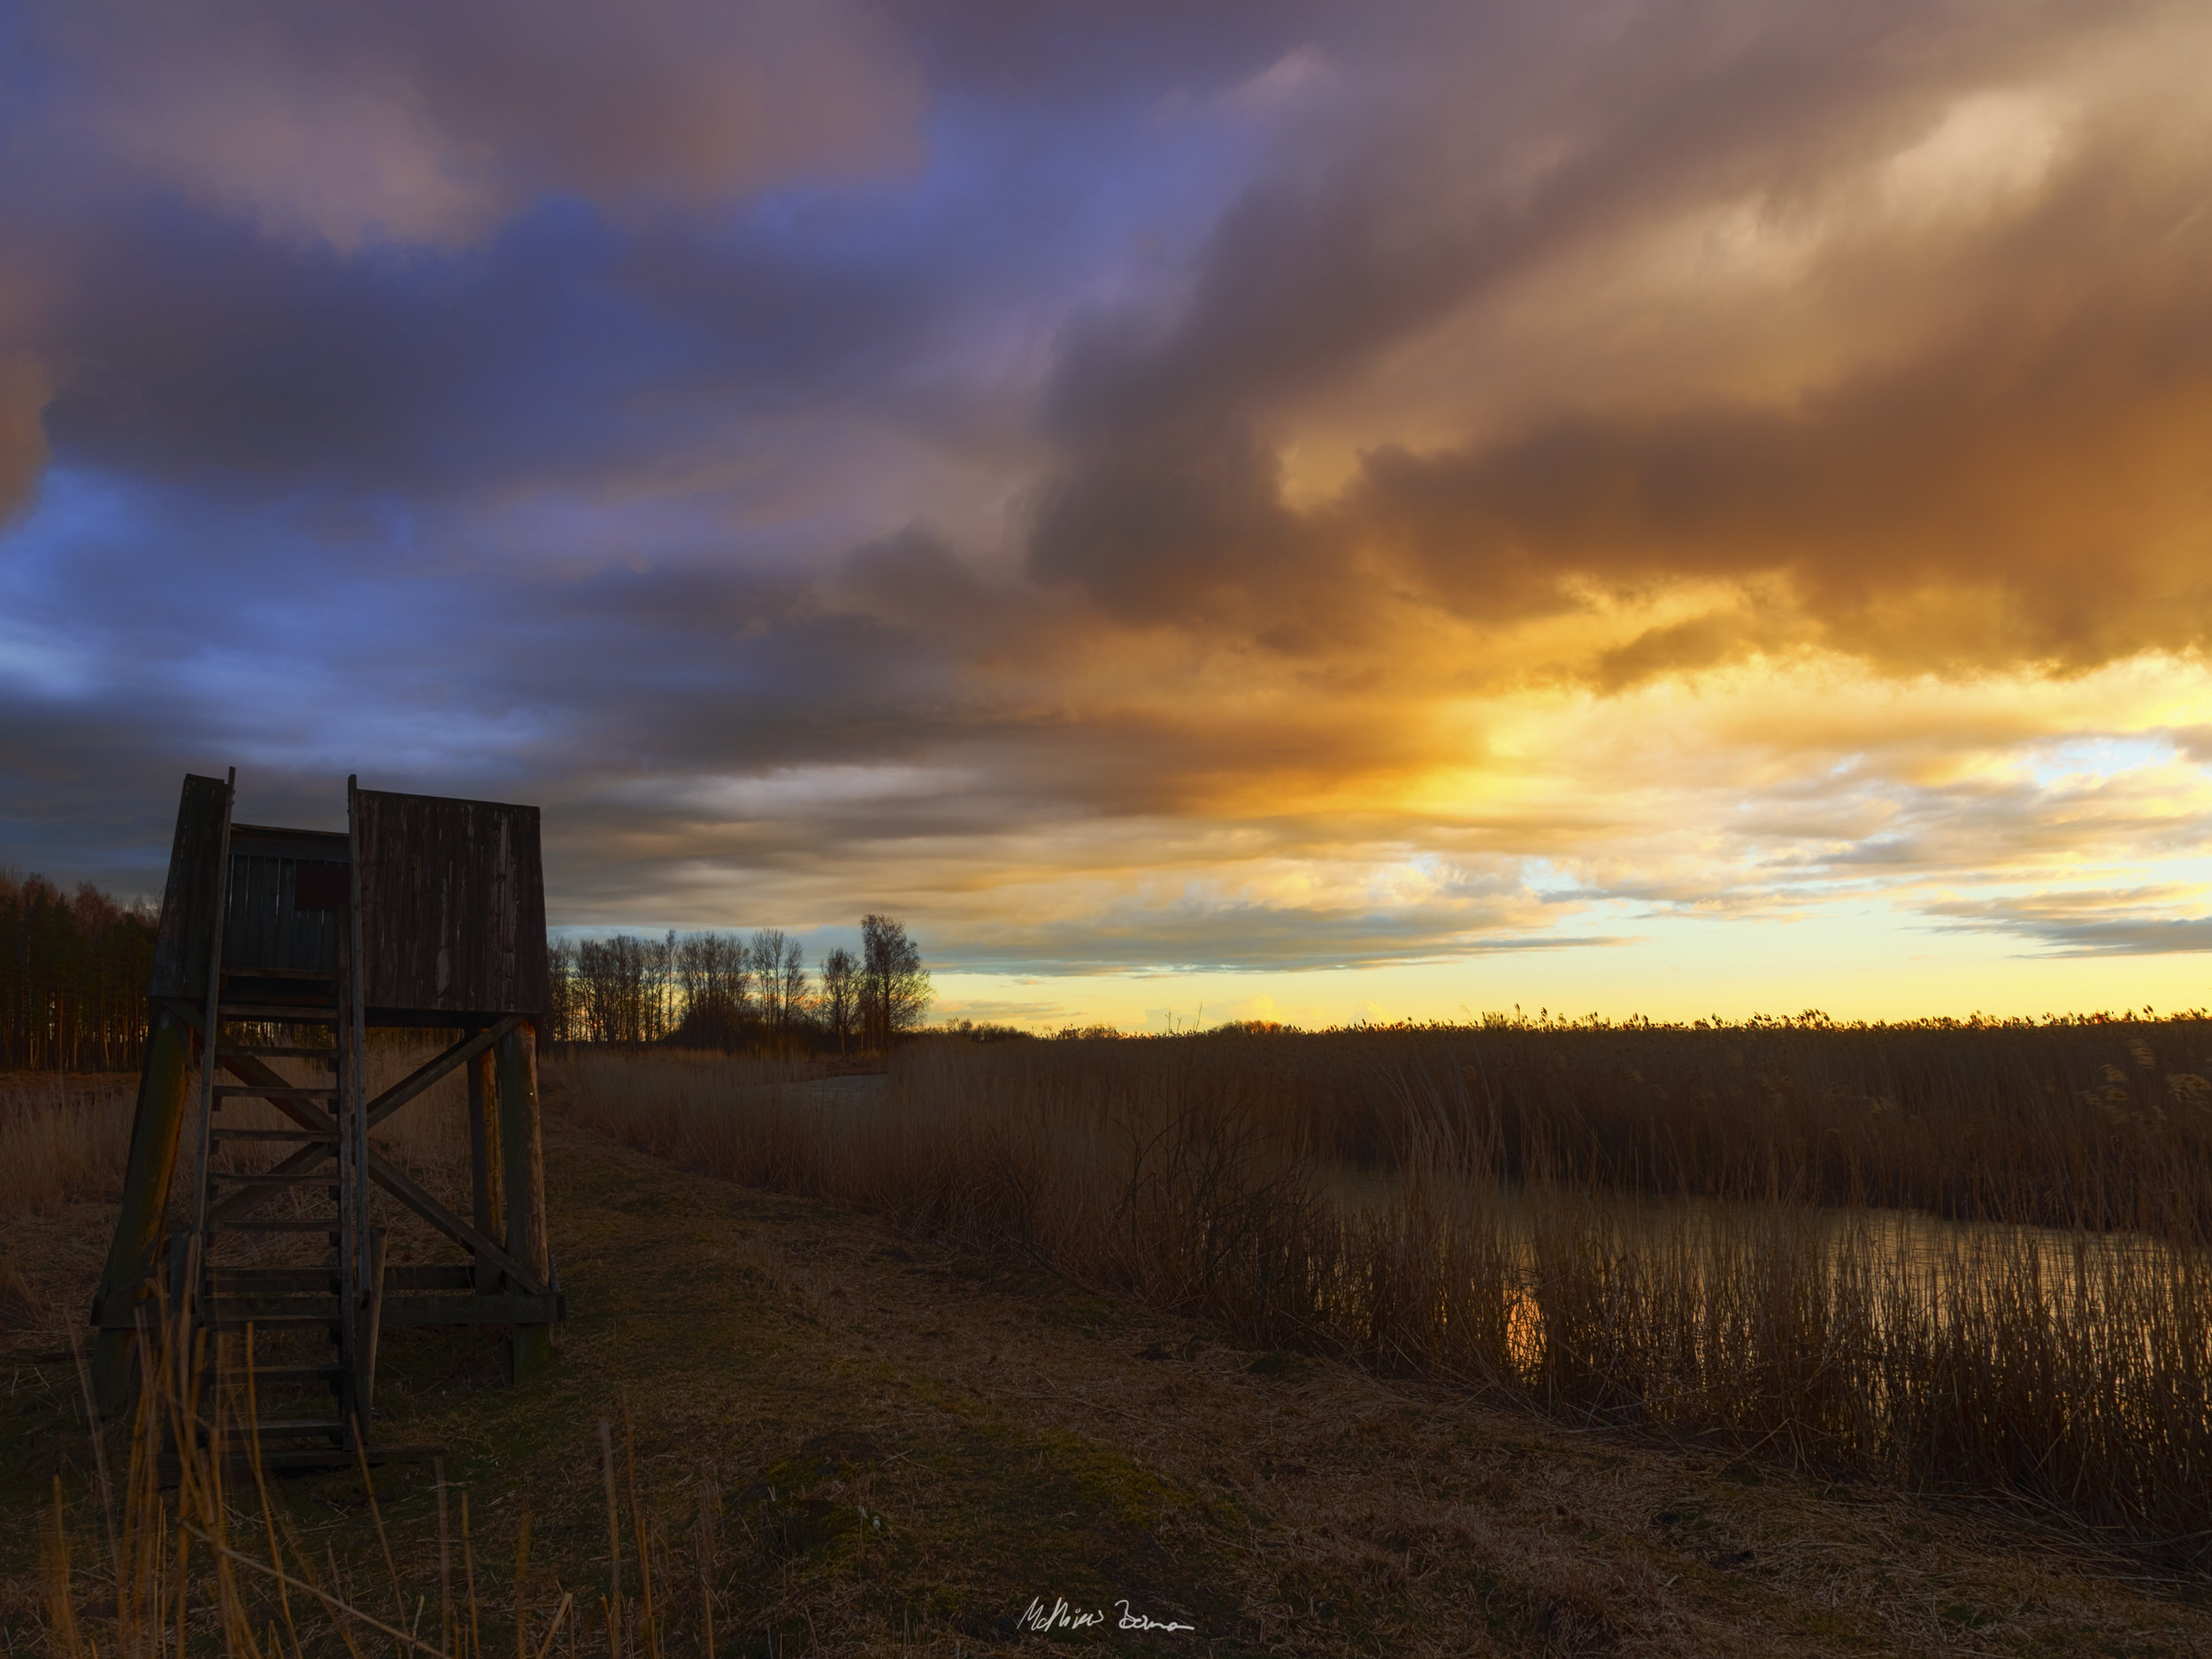 Canon 6D, Canon EF 24-105 f4 -> HDR, f16, ISO 100, 24mm